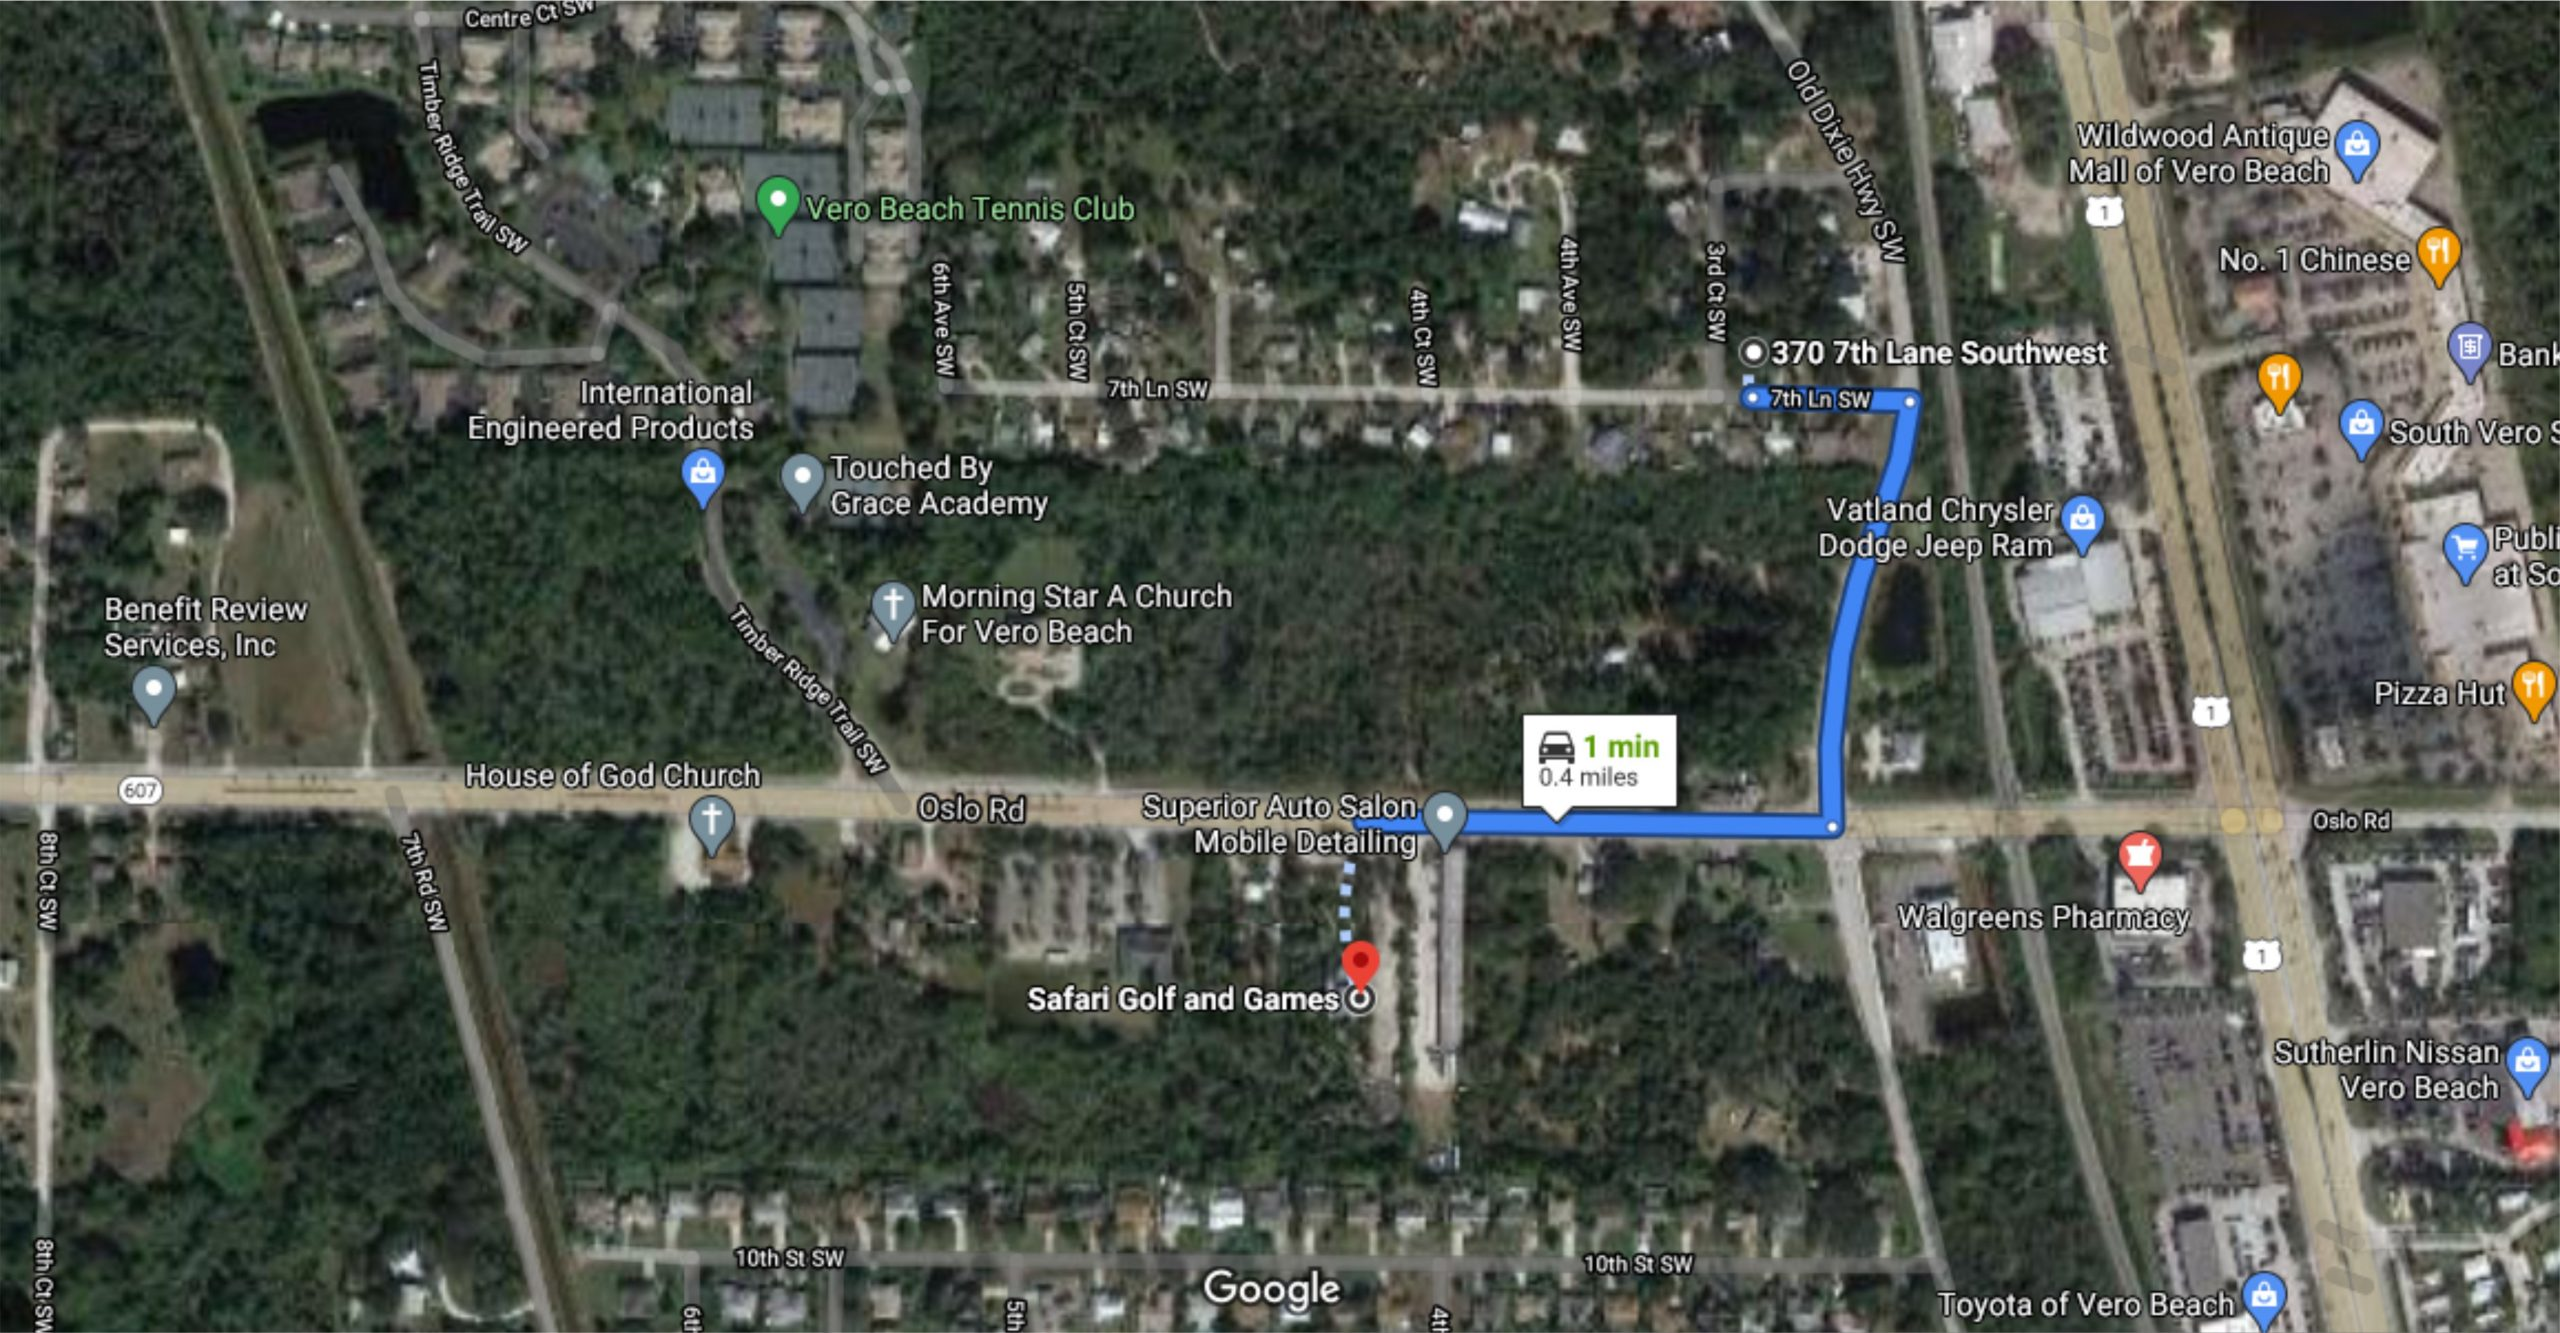 LOT NO. 2020-8 / 70 – 370 7TH LN SW, VERO BEACH, FL 32962